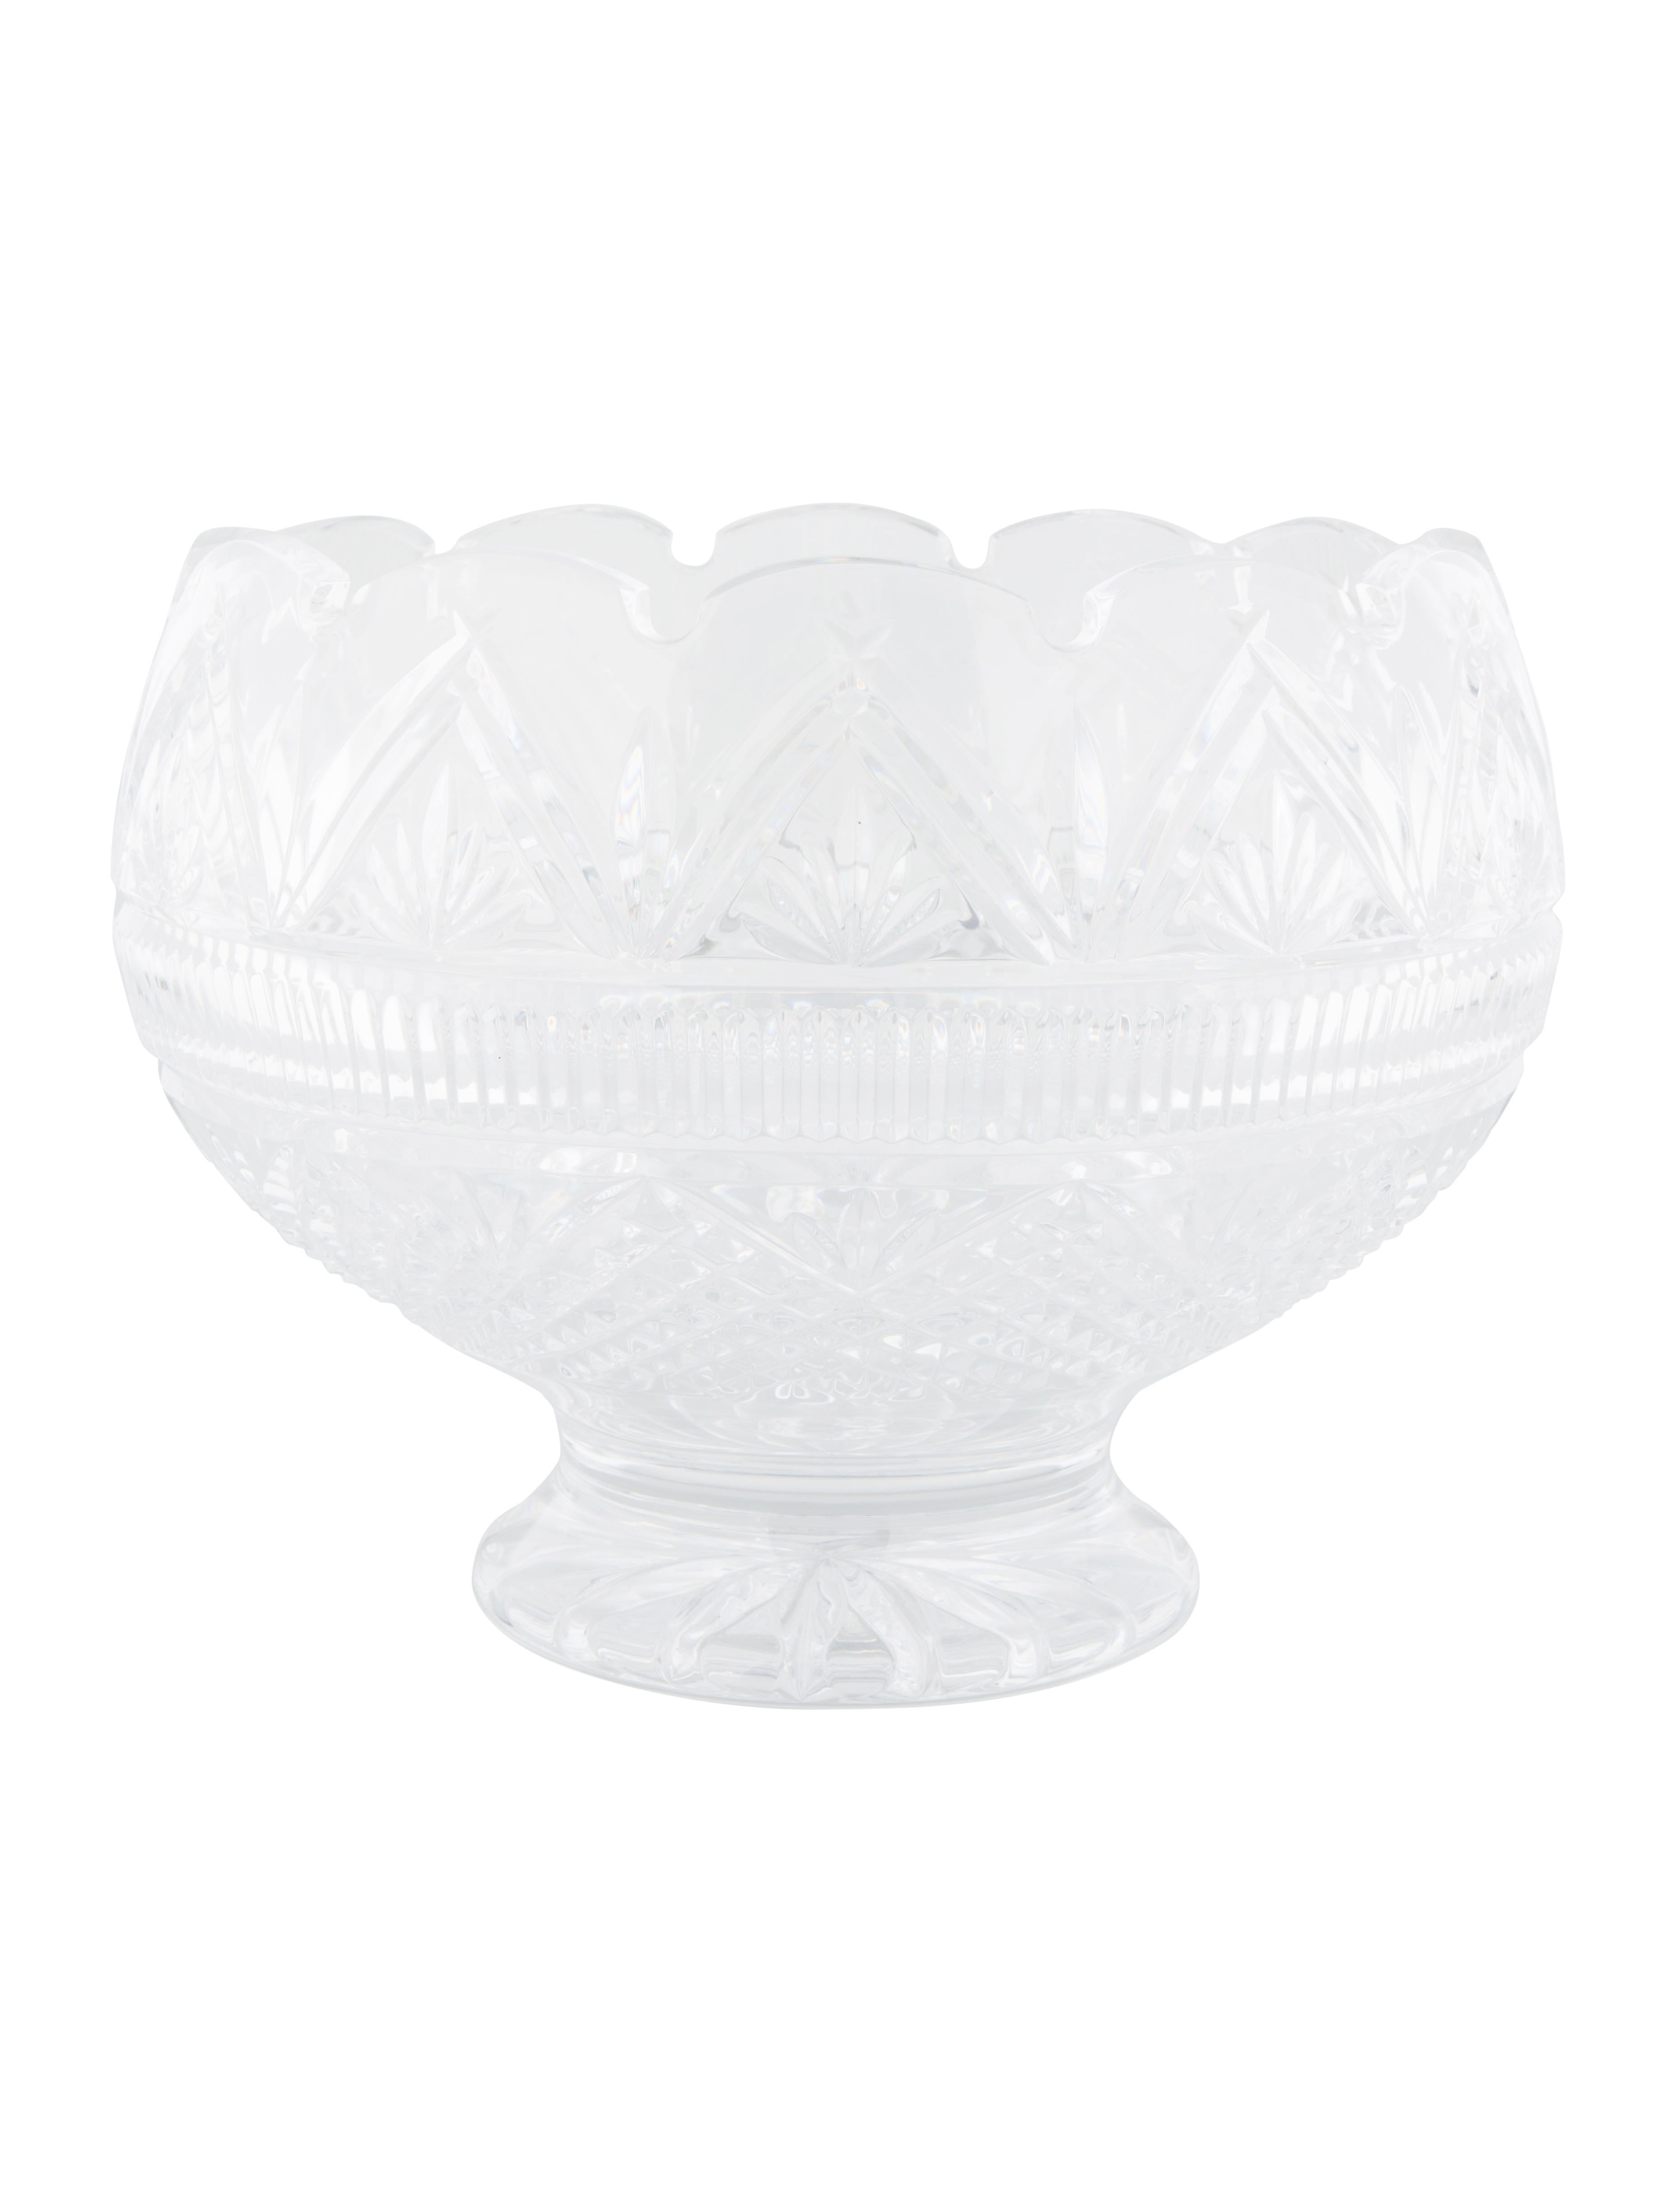 Waterford crystal footed centerpiece bowl tabletop and kitchen w5w22090 the realreal - Footed bowl centerpiece ...